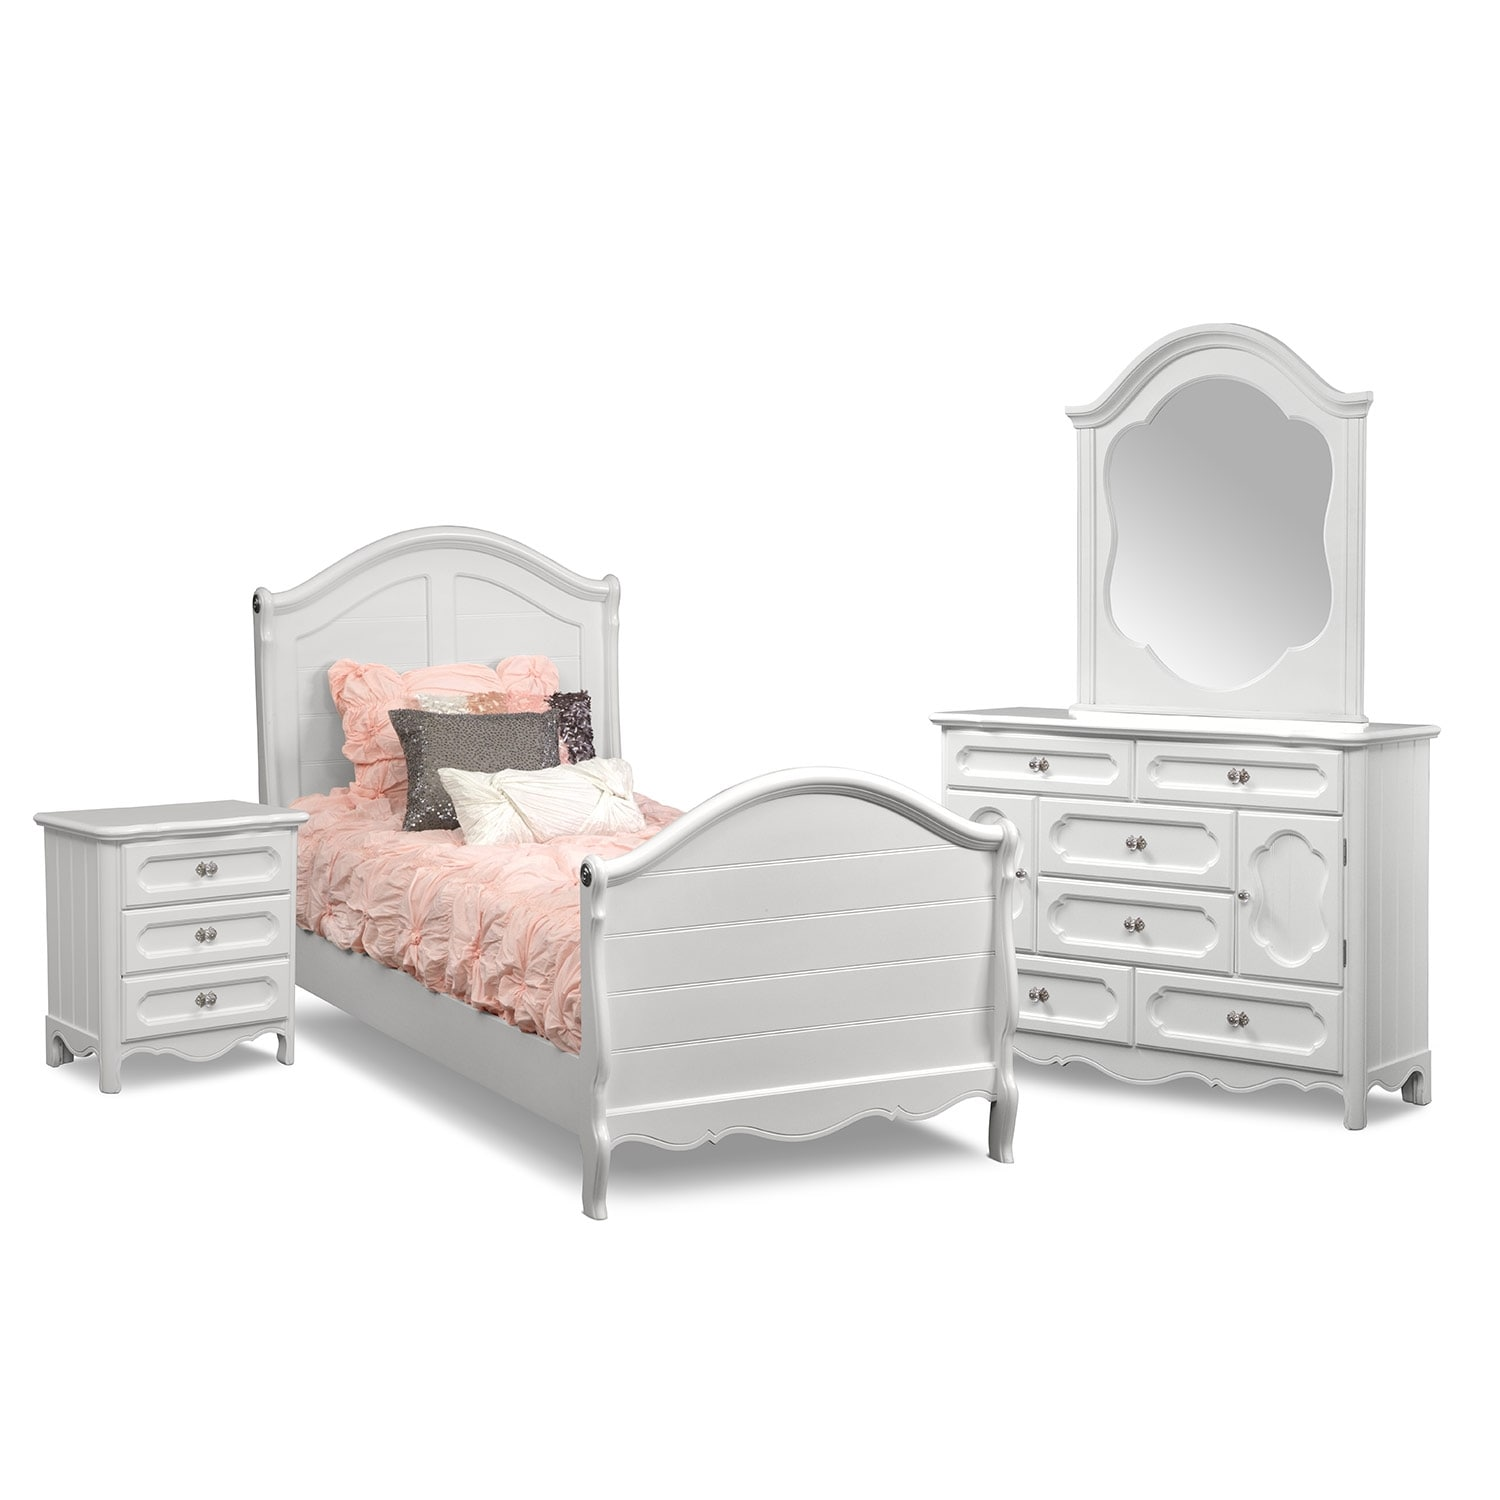 Carly 6 piece full bedroom set white value city furniture for White full bedroom furniture